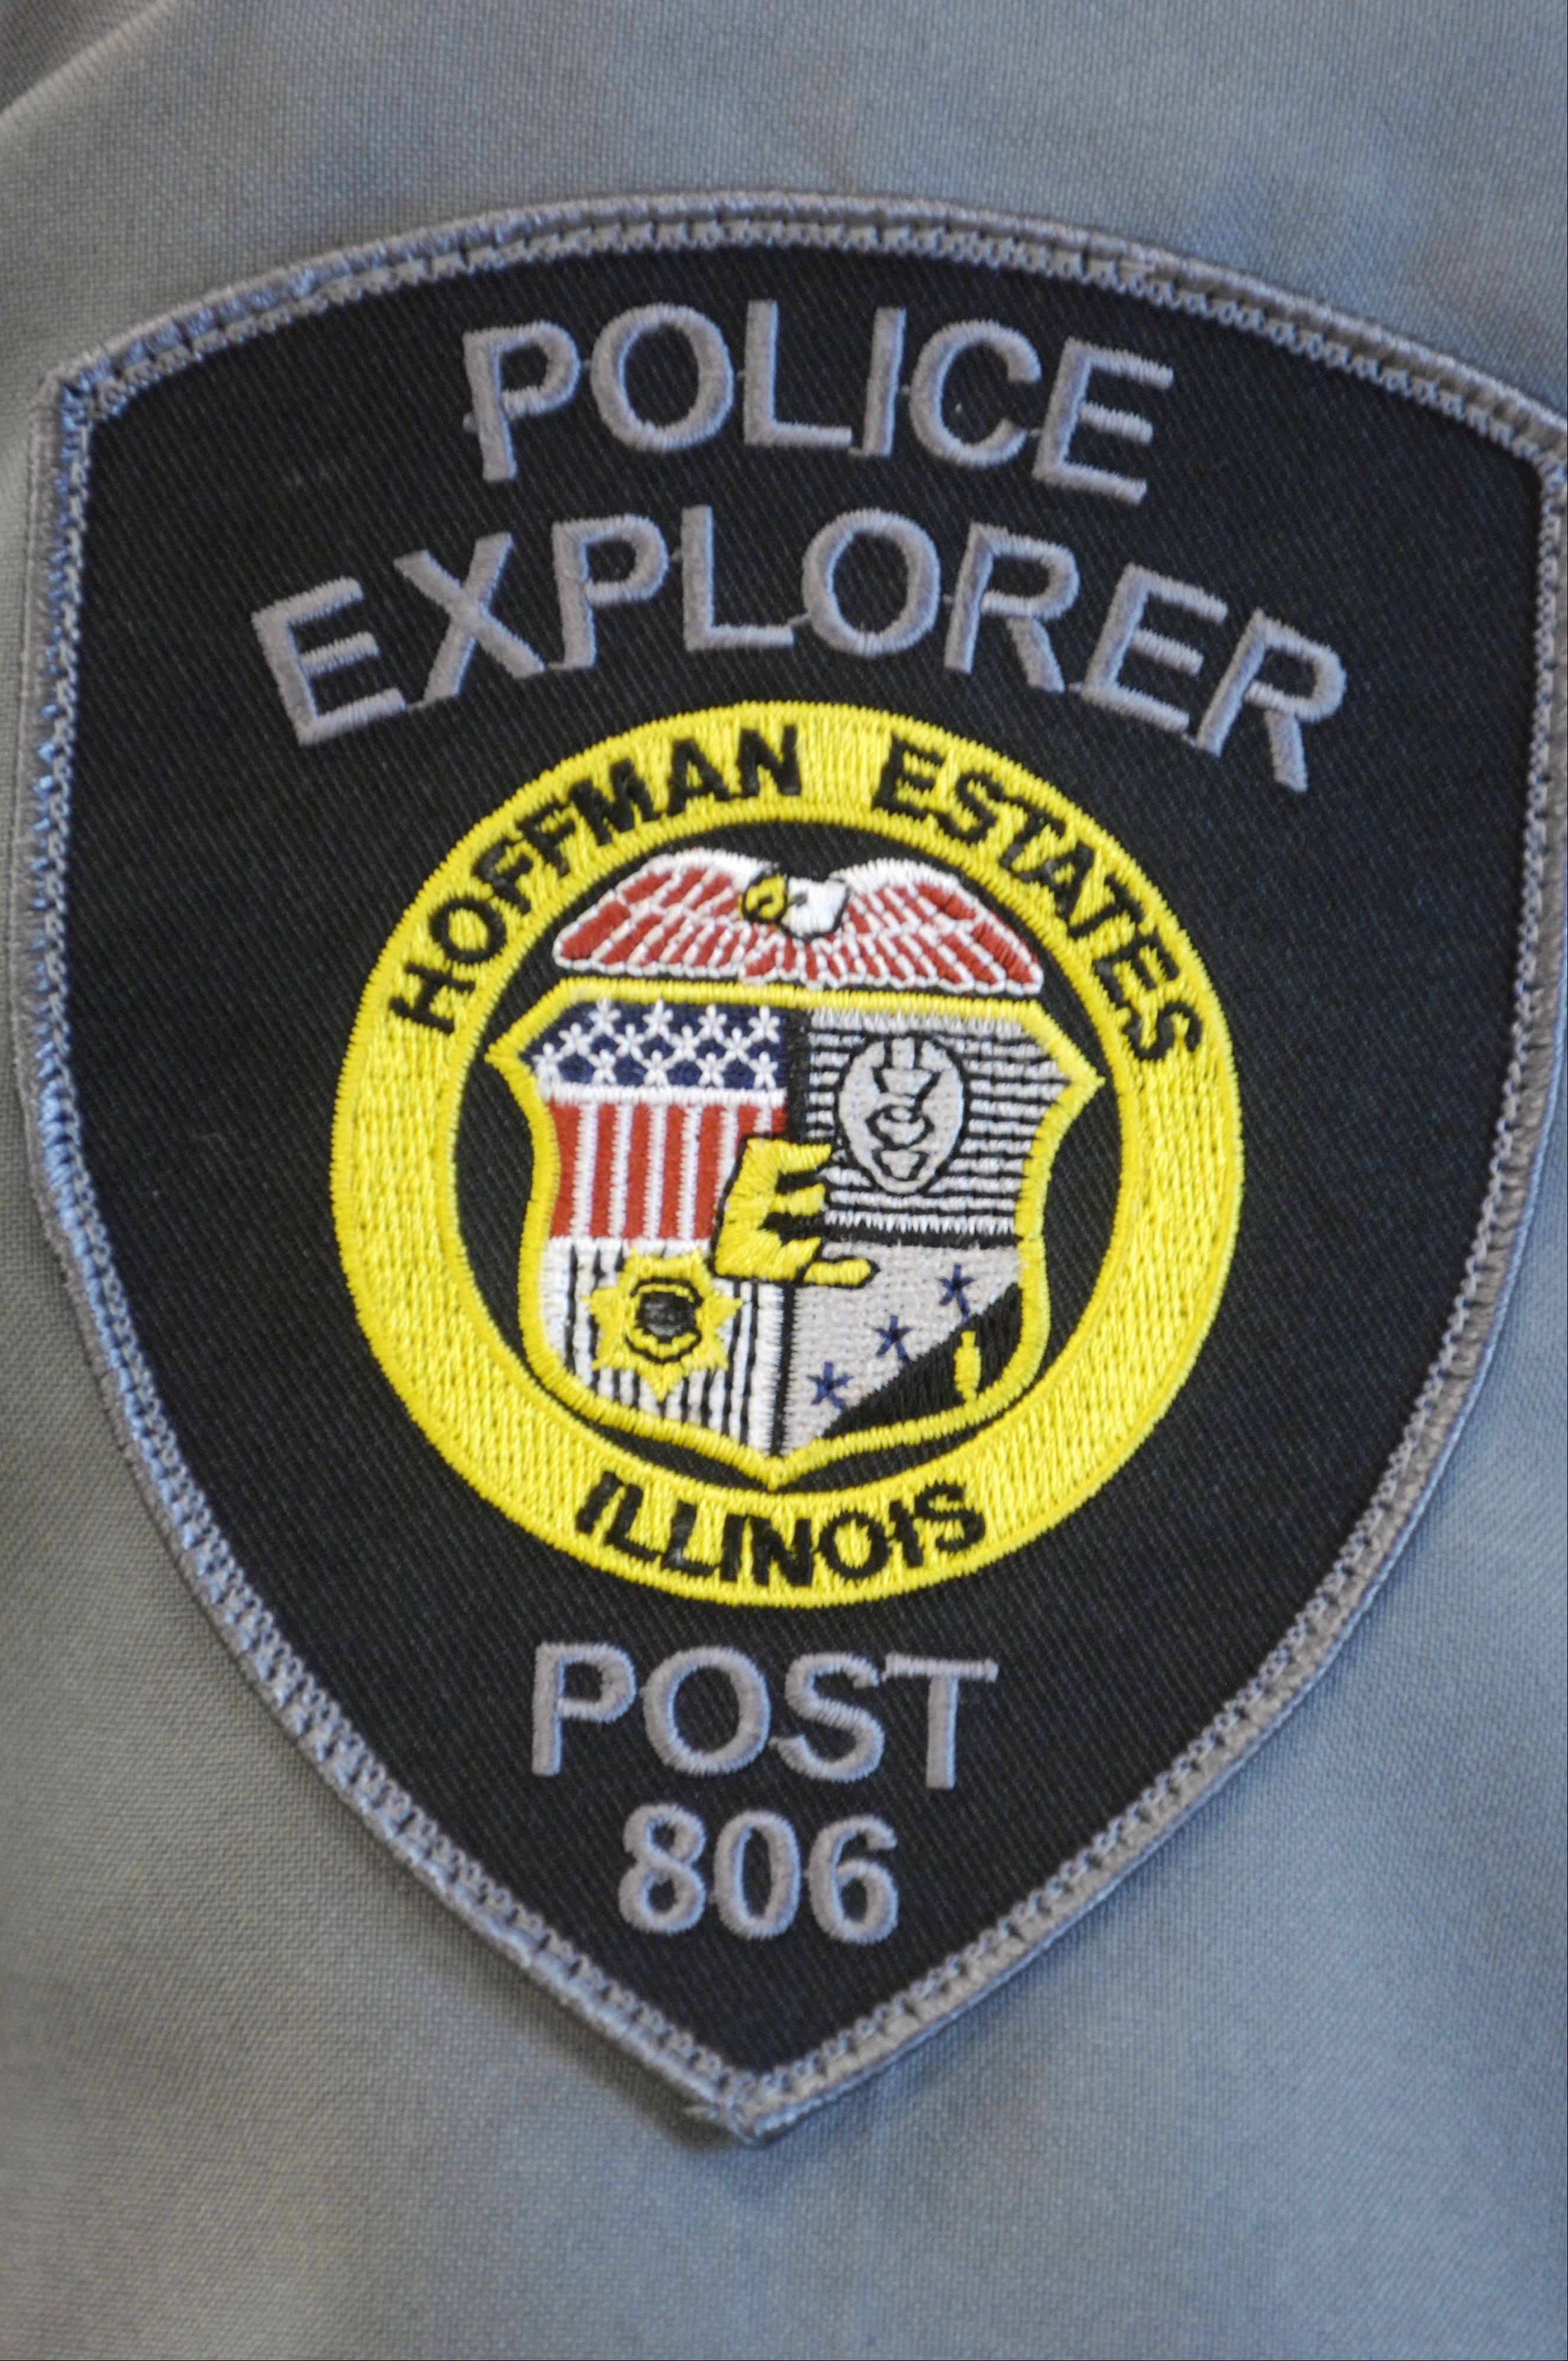 A Hoffman Estates Police Explorer patch on the sleeve of a class-B uniform.